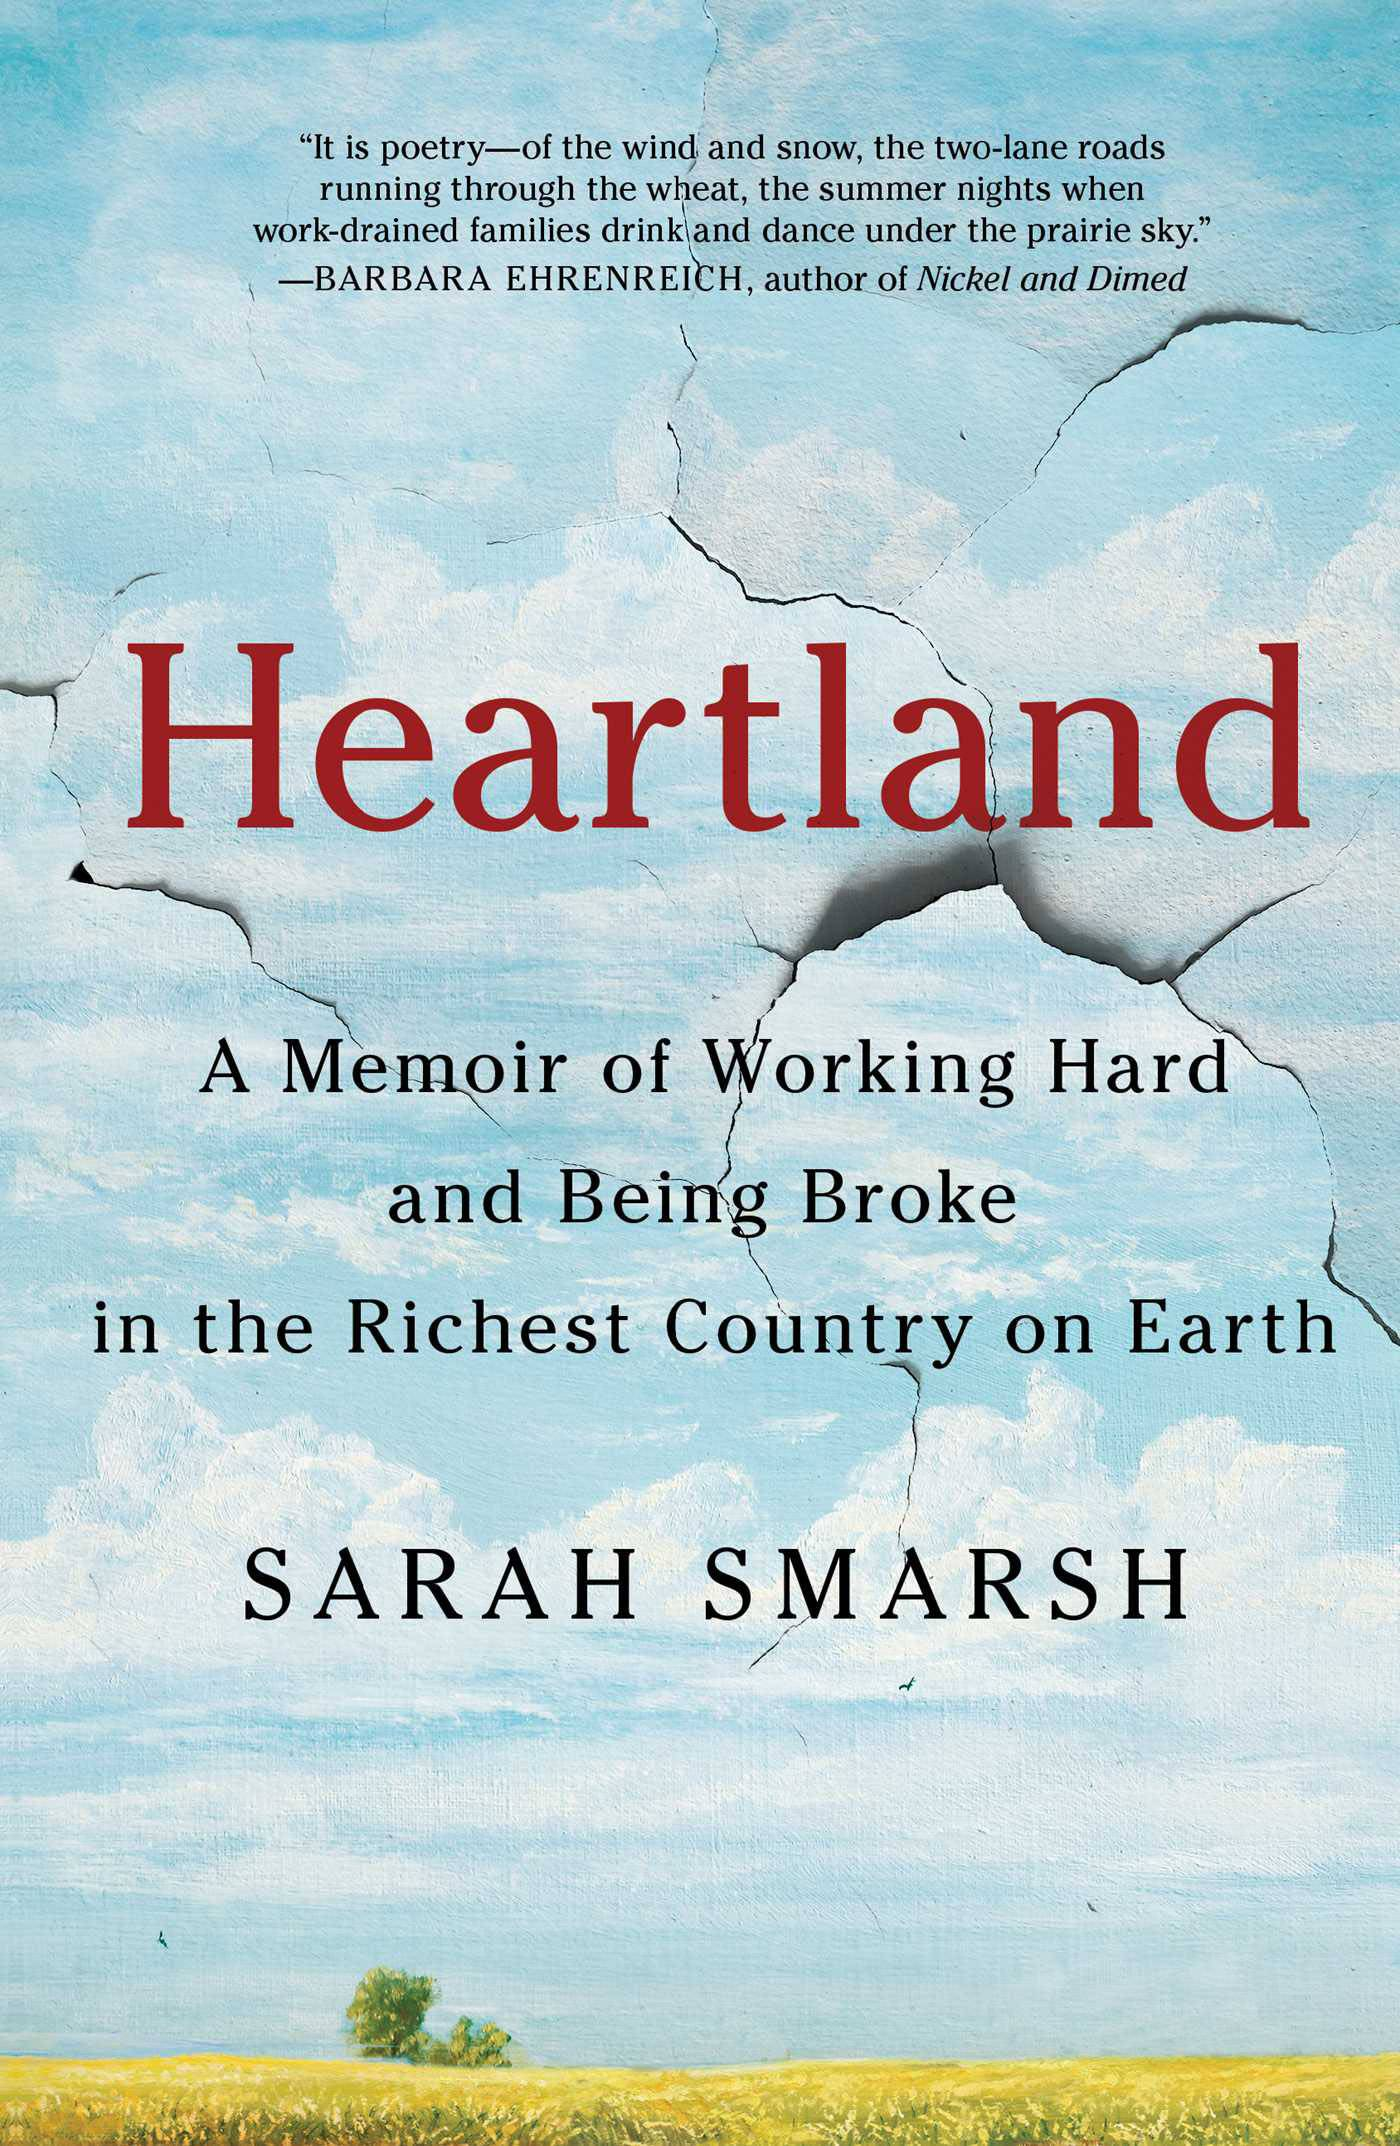 """Heartland: A Memoir of Working Hard and Being Broke in the Richest Country on Earth"" by Sarah Smarsh"